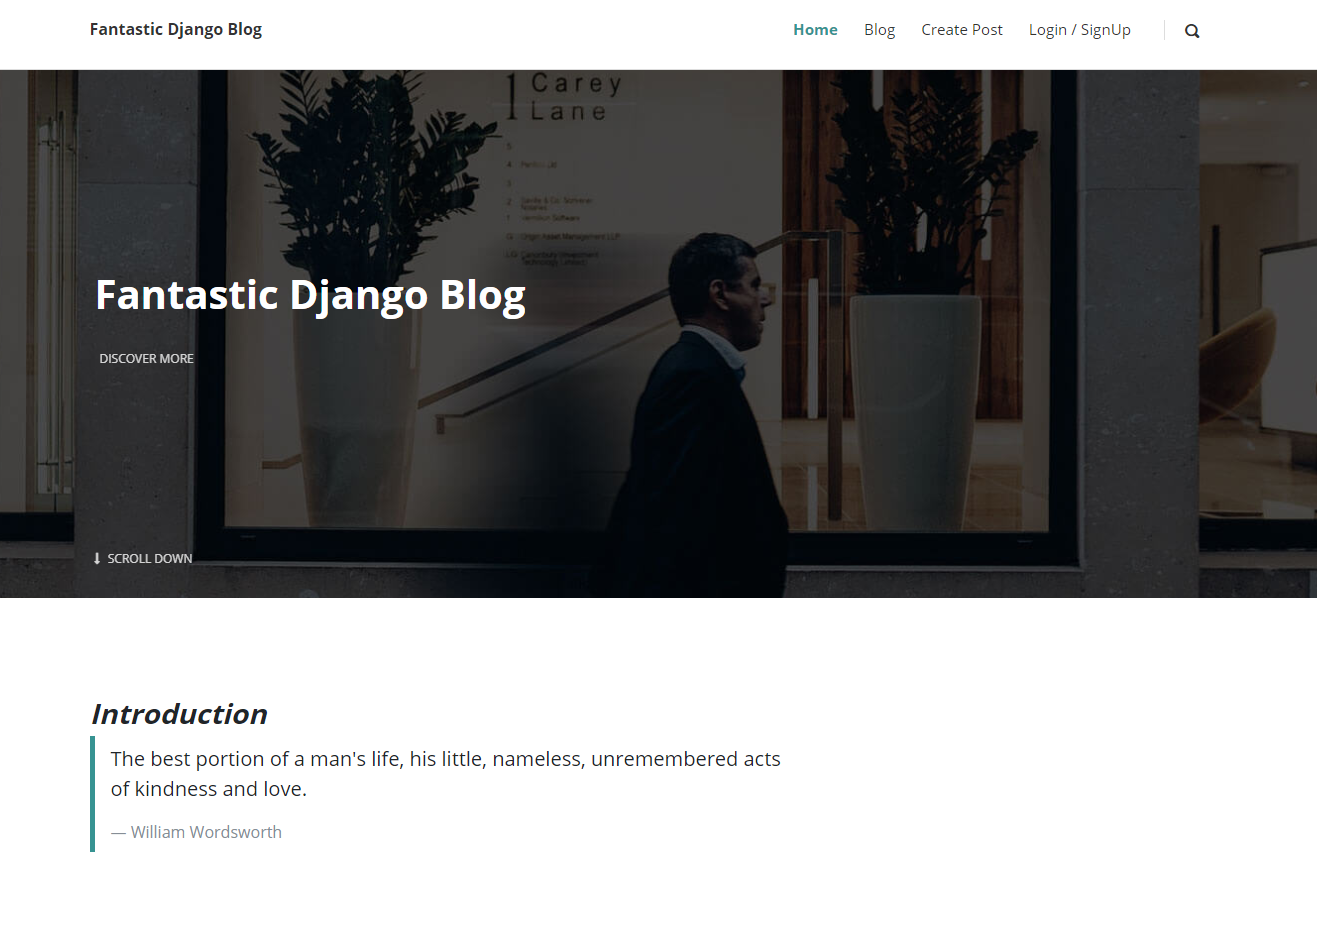 Fantastic Blog App made using Django Framework